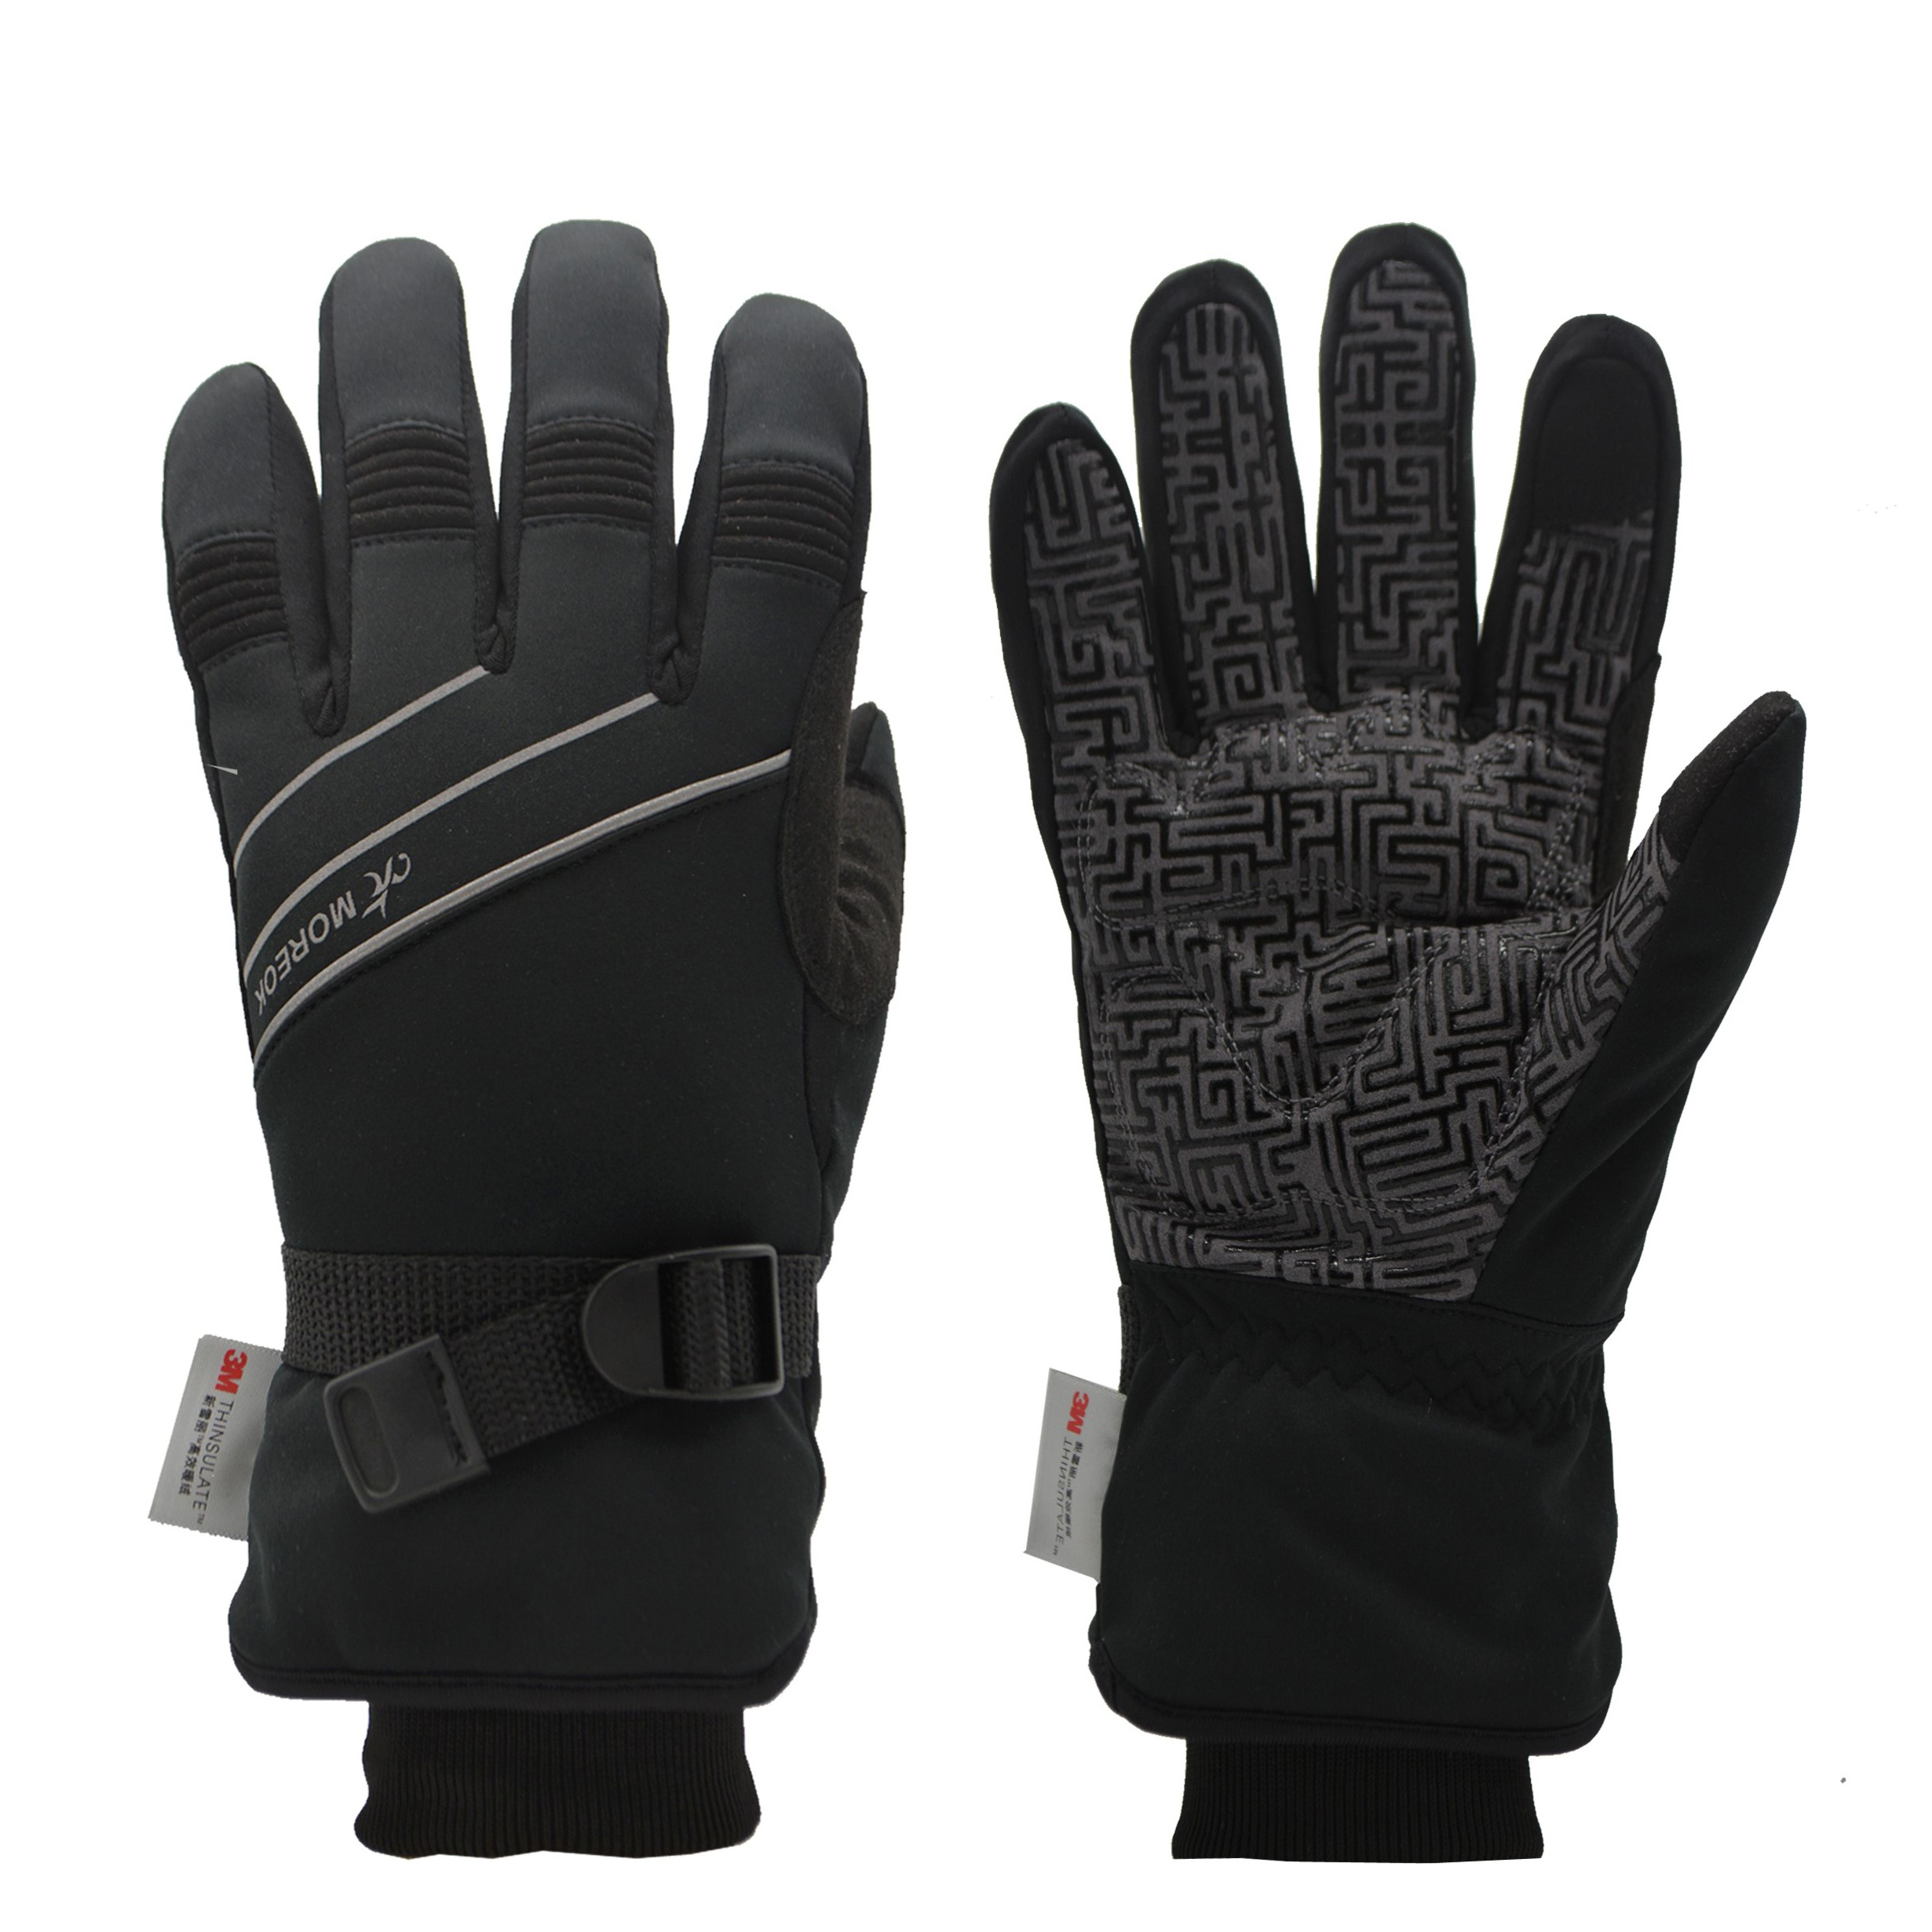 MOREOK 3M thinsulate Insulation Winter Ski Thermal Bicycle Racing MTB Bike Reflective Touch Screen Cycling Gloves Outdoor Sports, Black